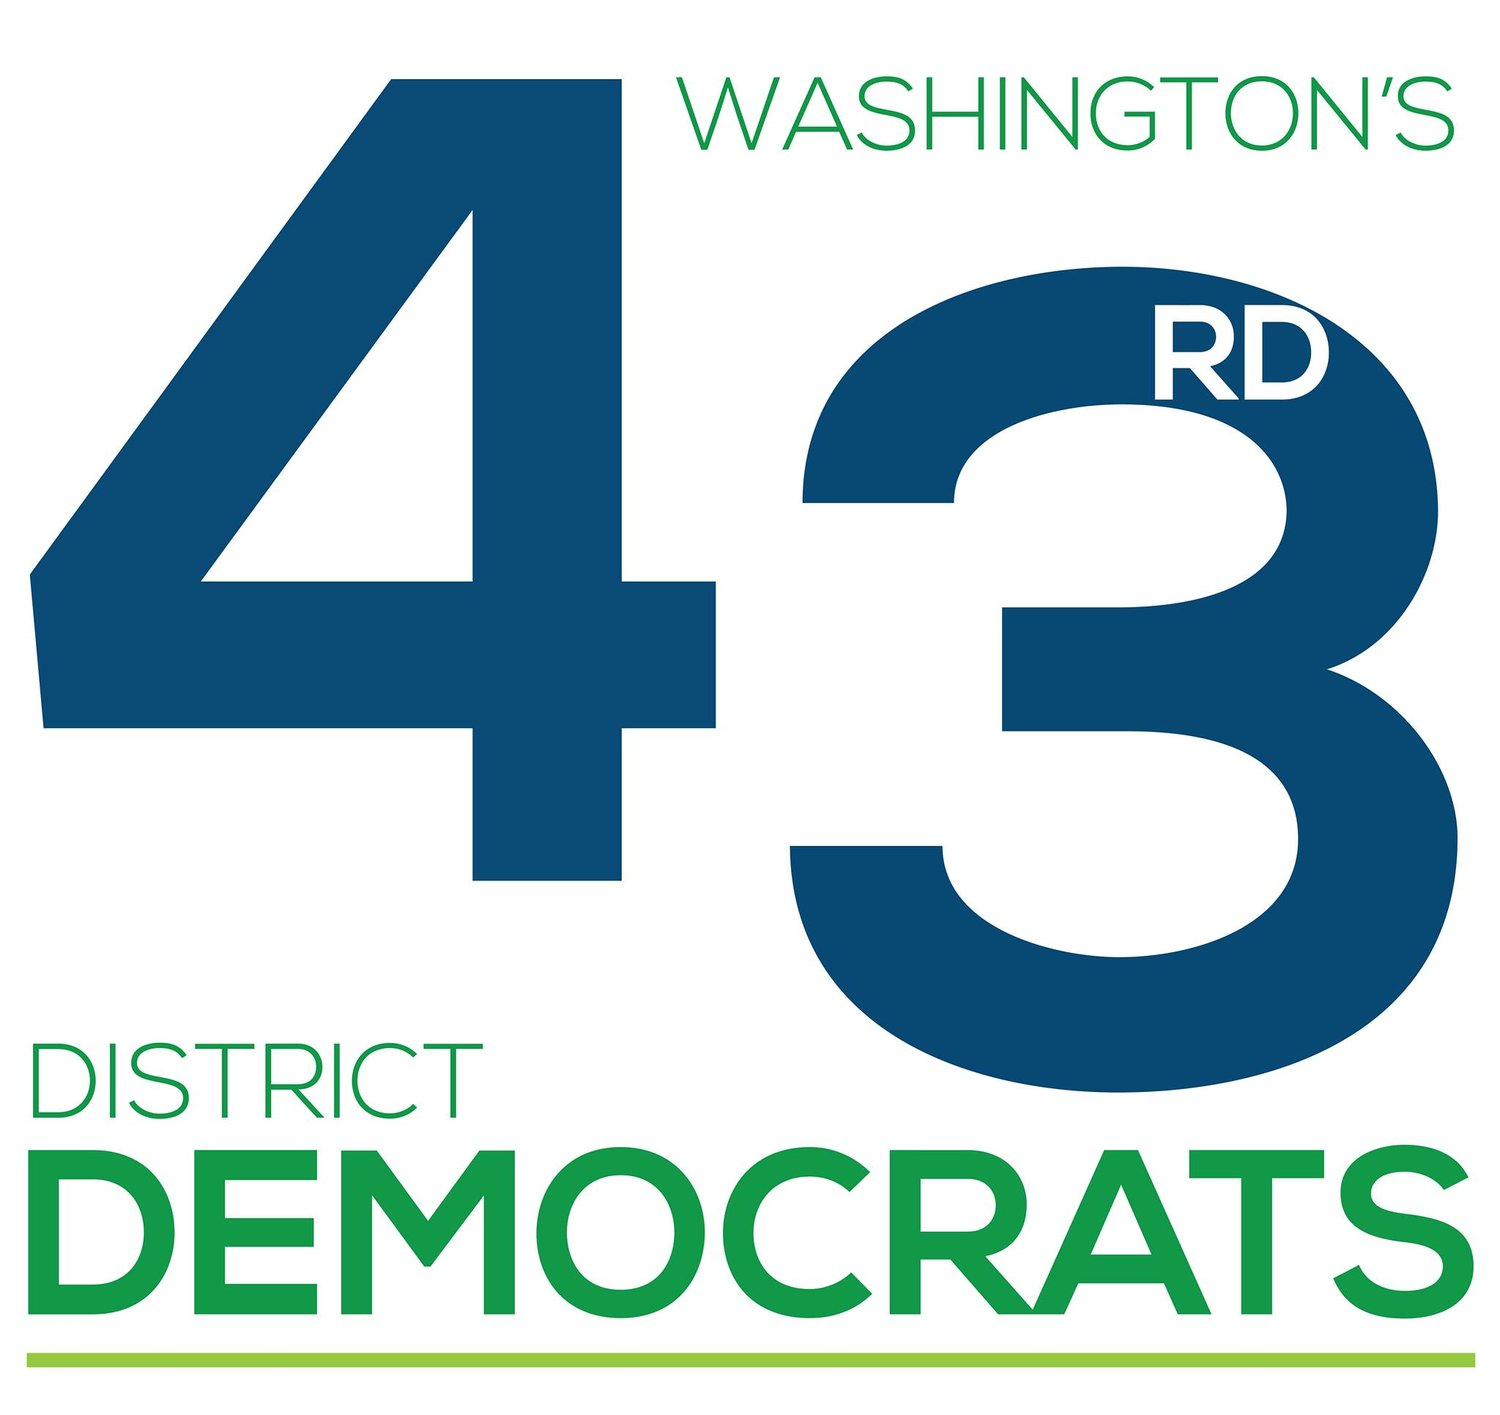 43rd District Democrats